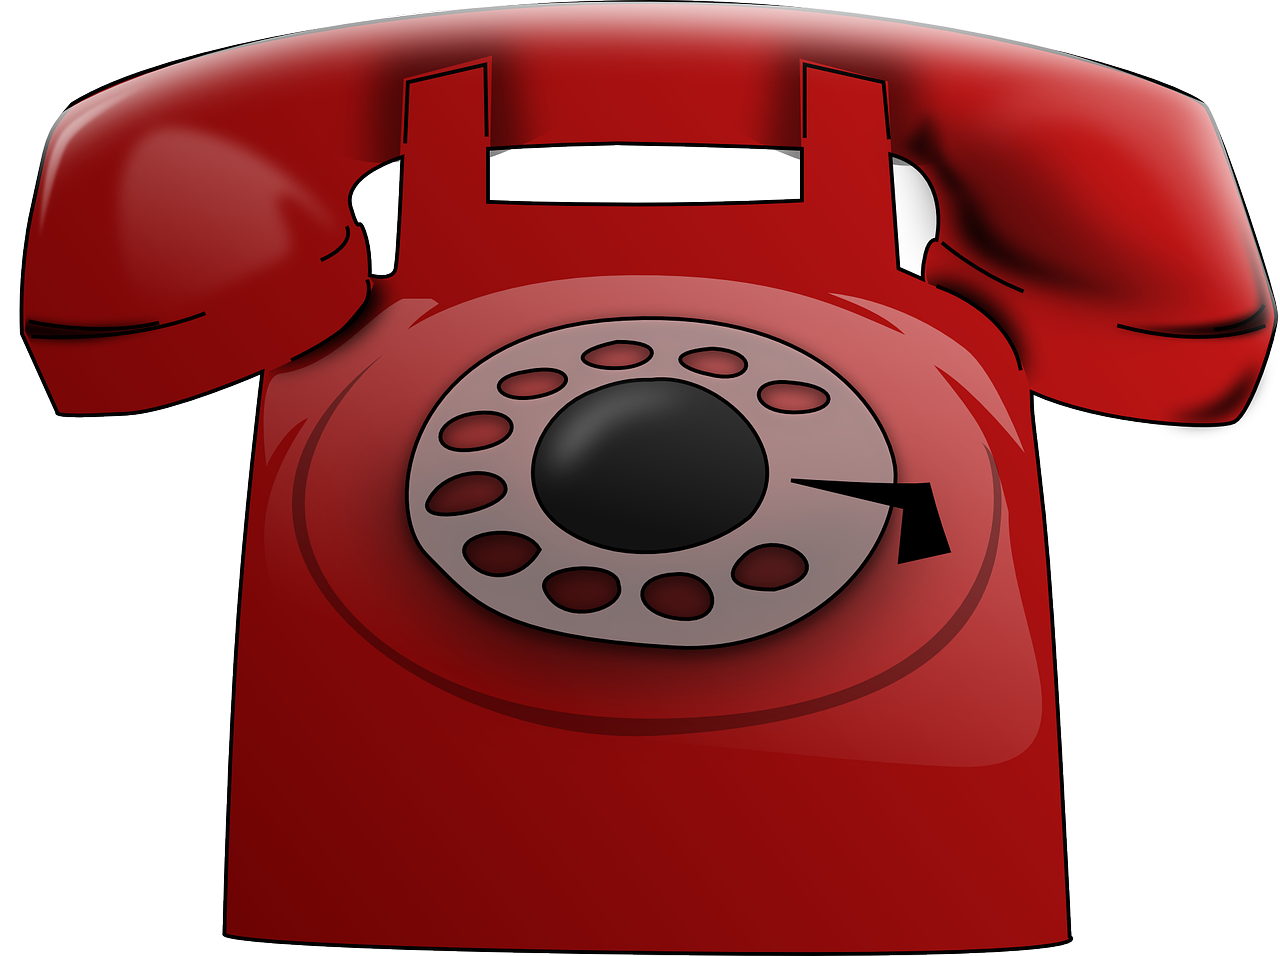 Telephone clipart phone ring. Contact us community wellness